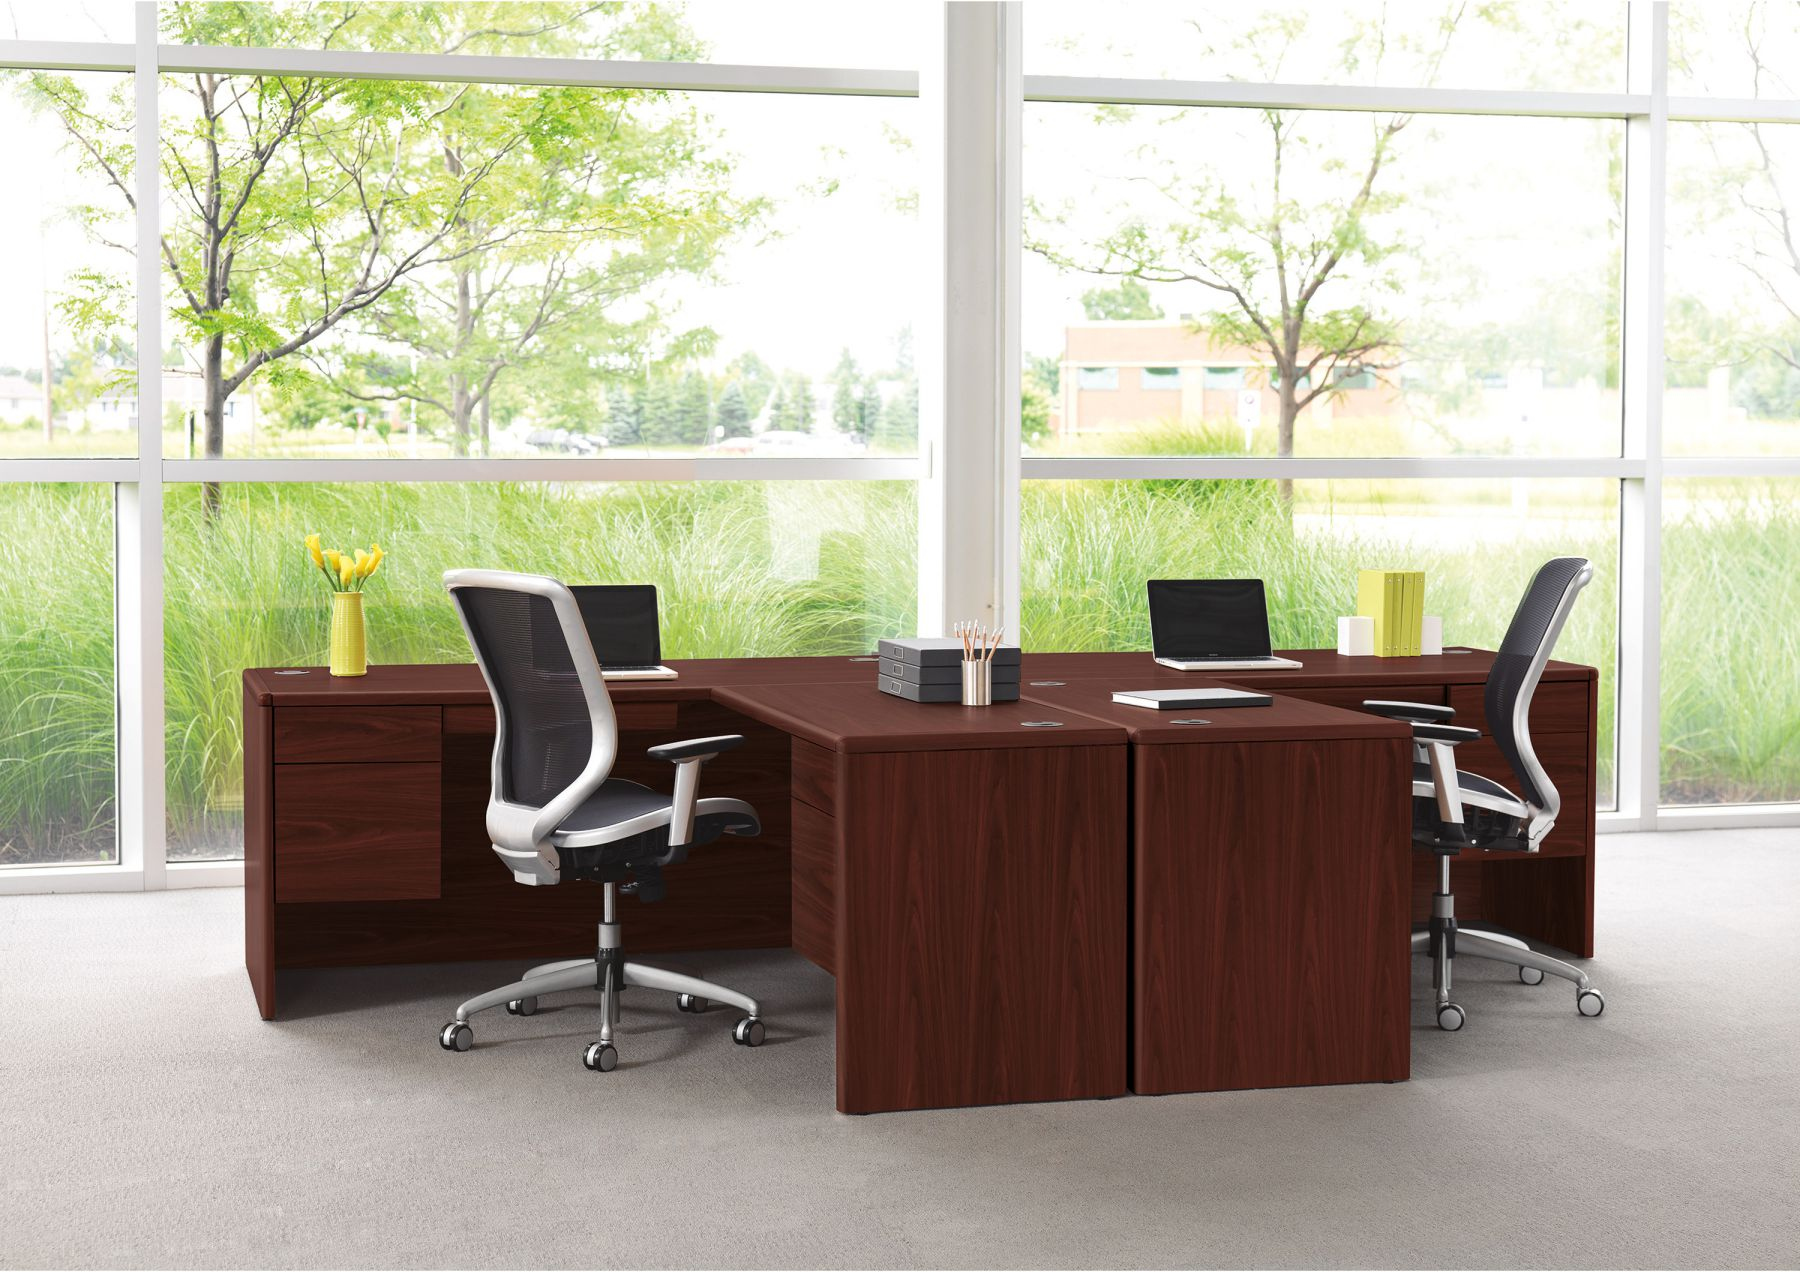 Phenomenal Office Furniture Office Desks Office Chairs In Trinidad Interior Design Ideas Tzicisoteloinfo